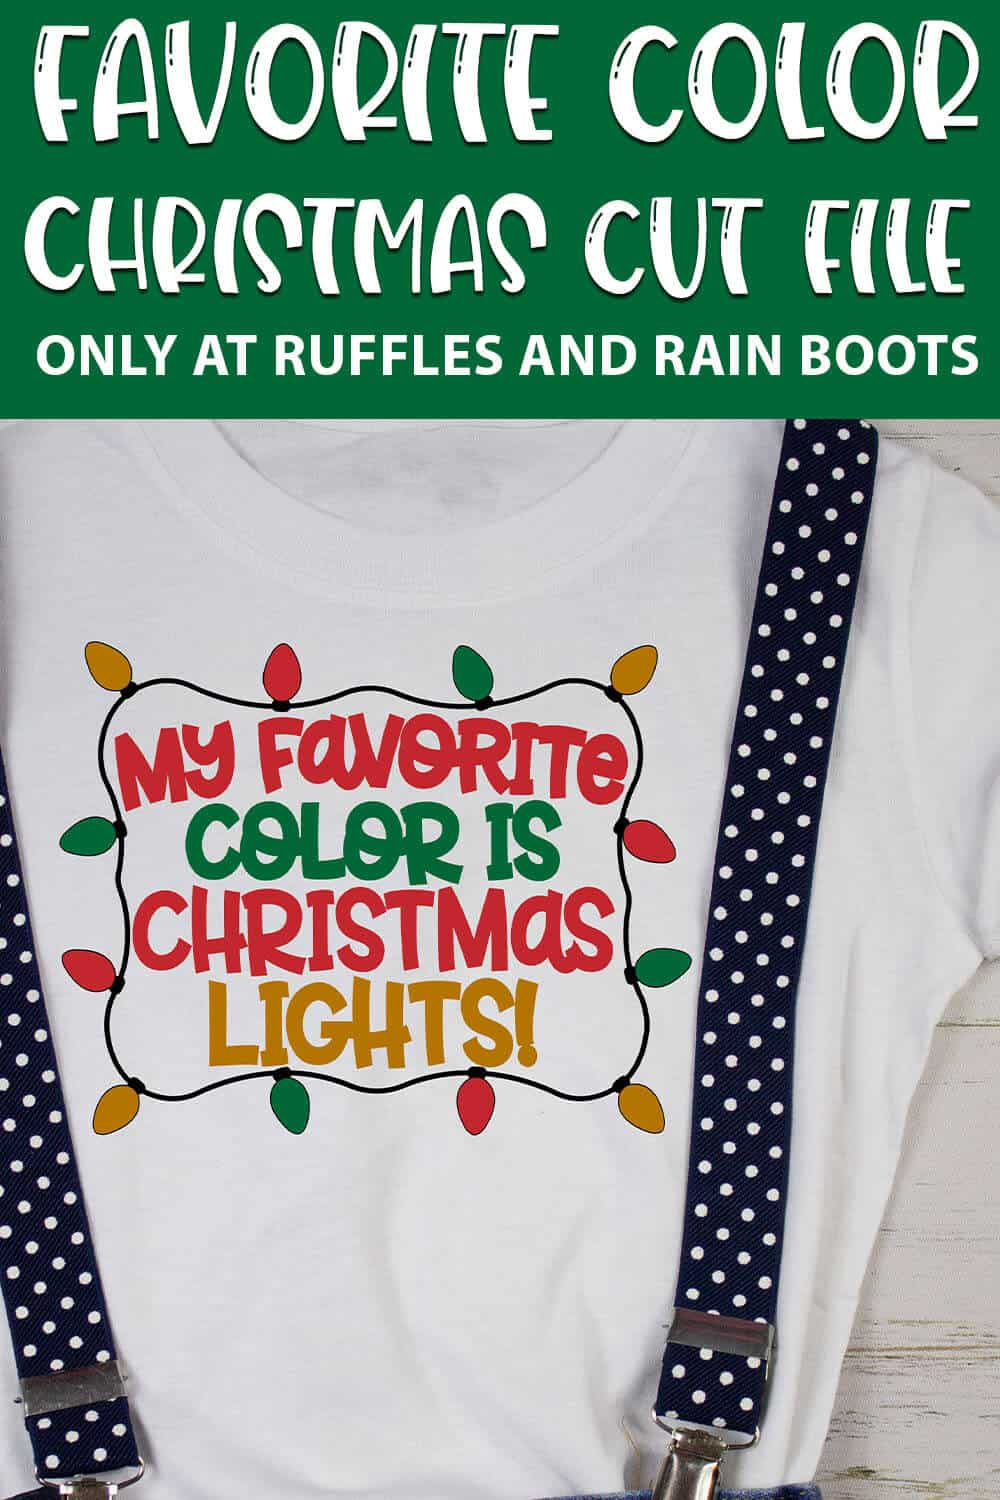 my favorite color is christmas lights cut file set for cricut or silhouette with text which reads favorite color christmas cut file